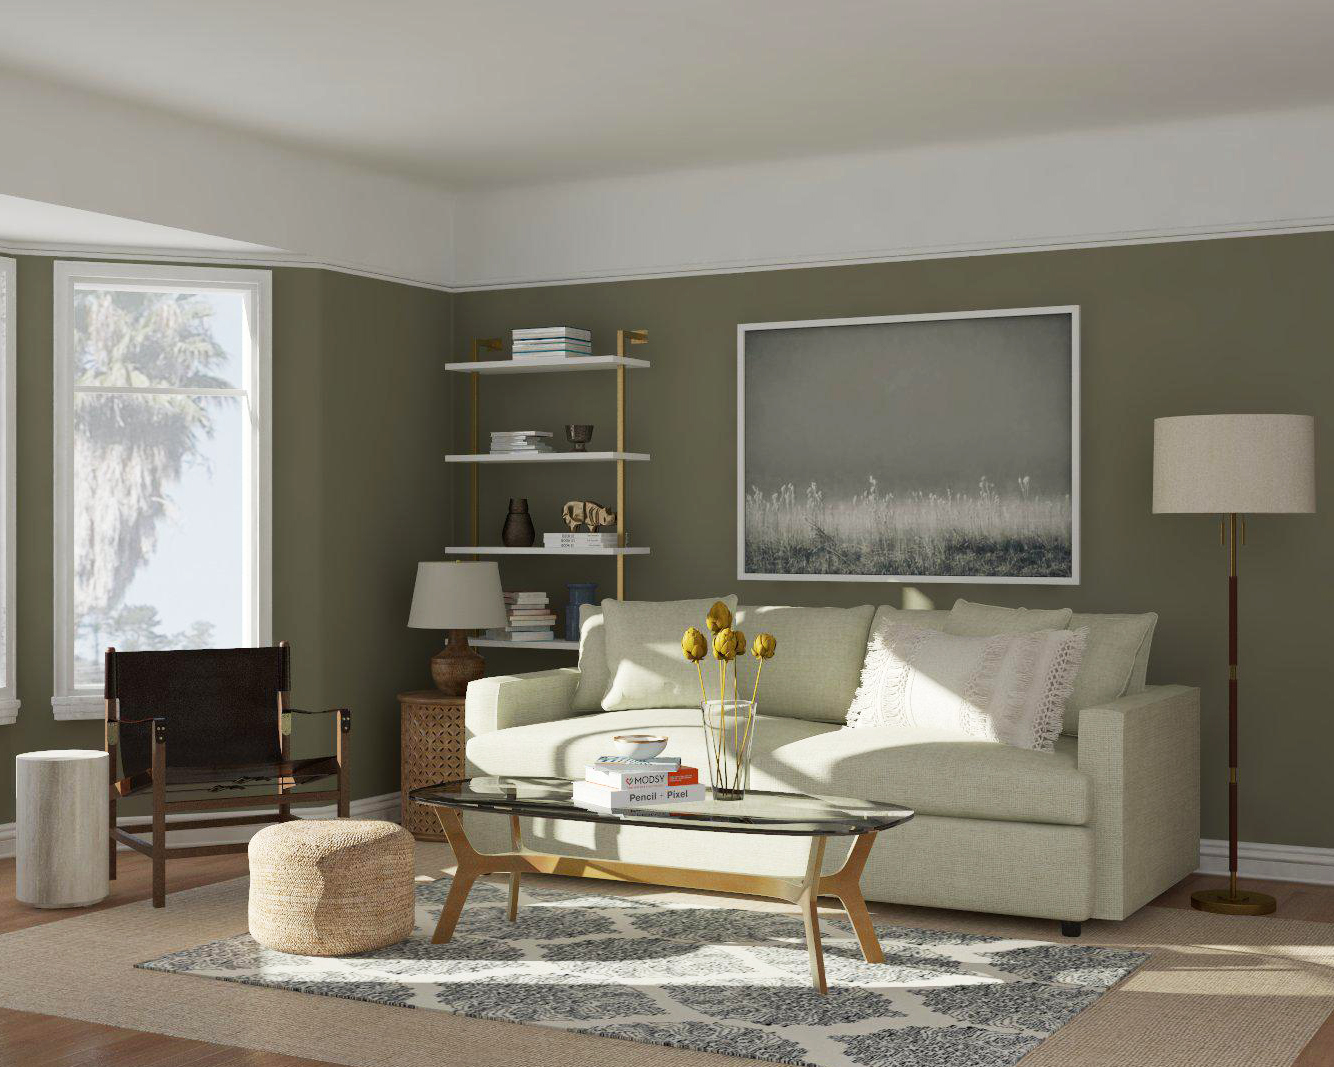 Transform Any Space With These Paint Color Ideas | Modsy Blog on Room Painting id=42780